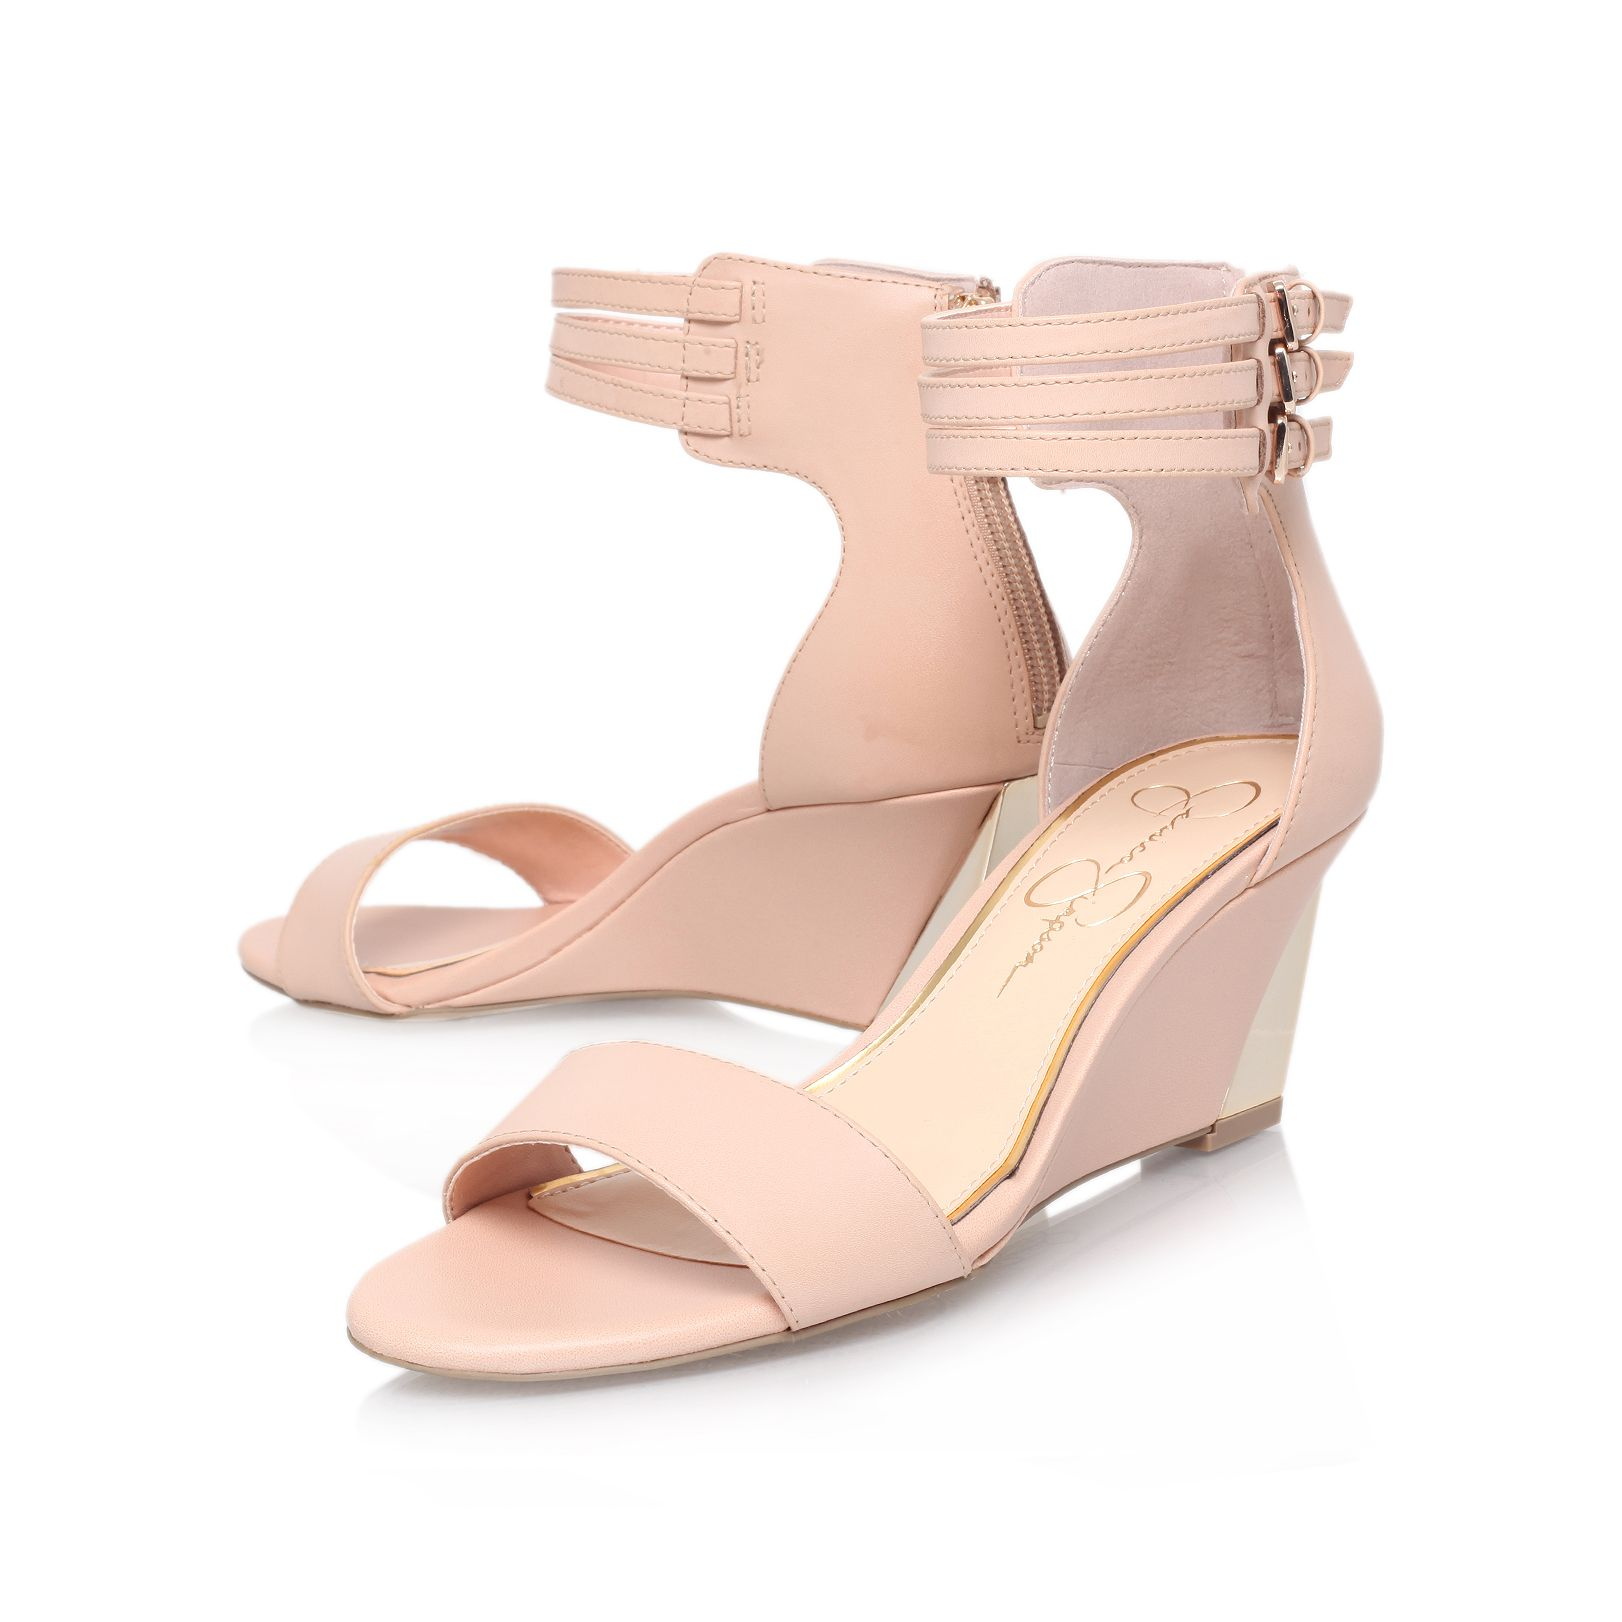 Habinaa mid heel wedge sandals